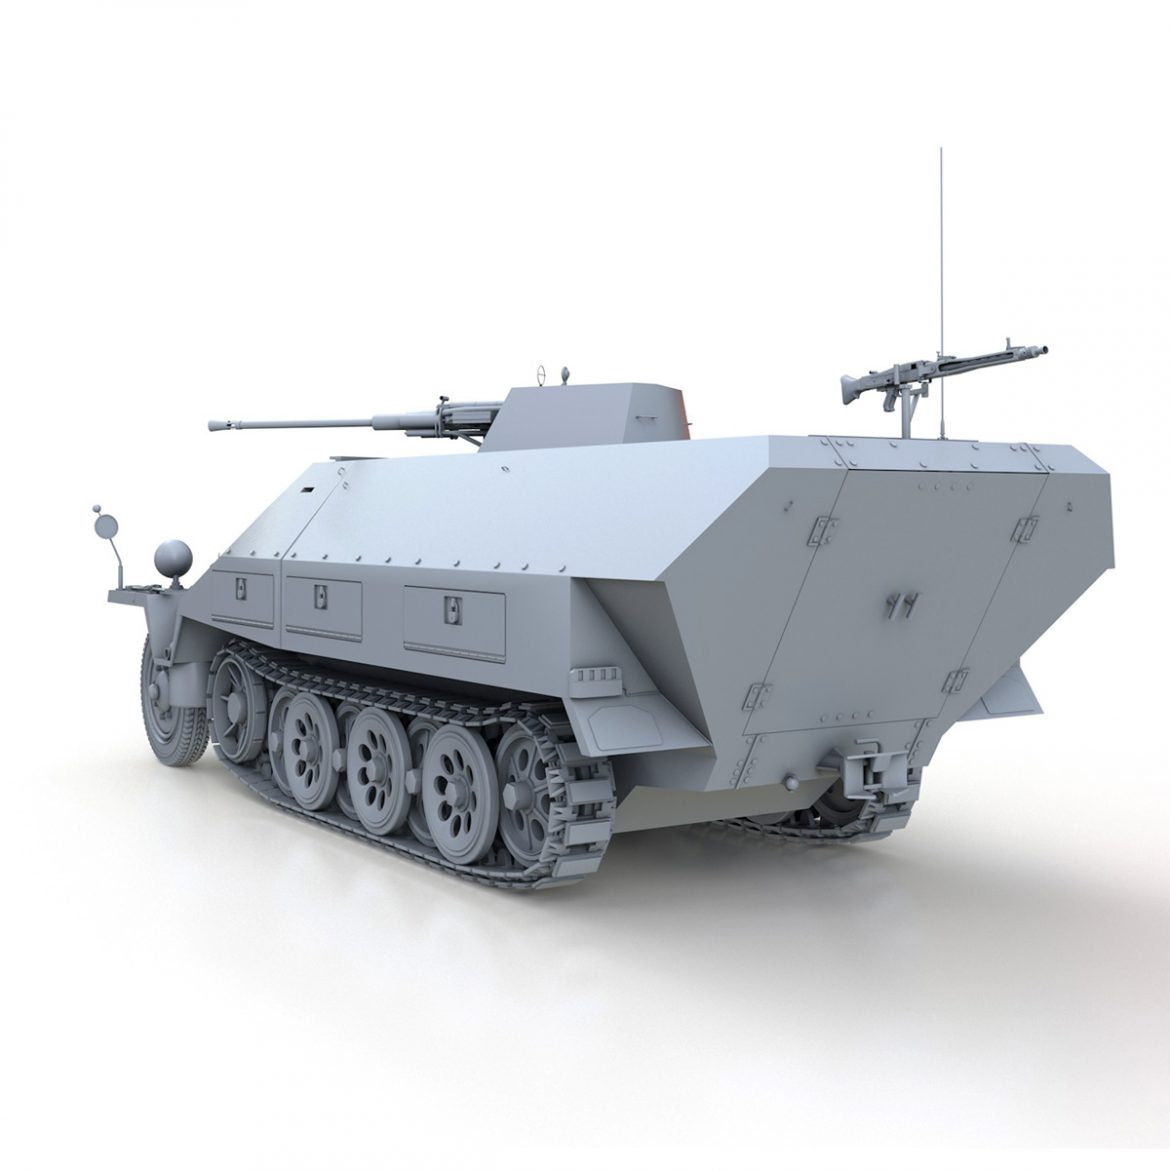 sd.kfz 251/17 ausf.d – anti-aircraft vehicle 3d model 3ds fbx c4d lwo obj 302950